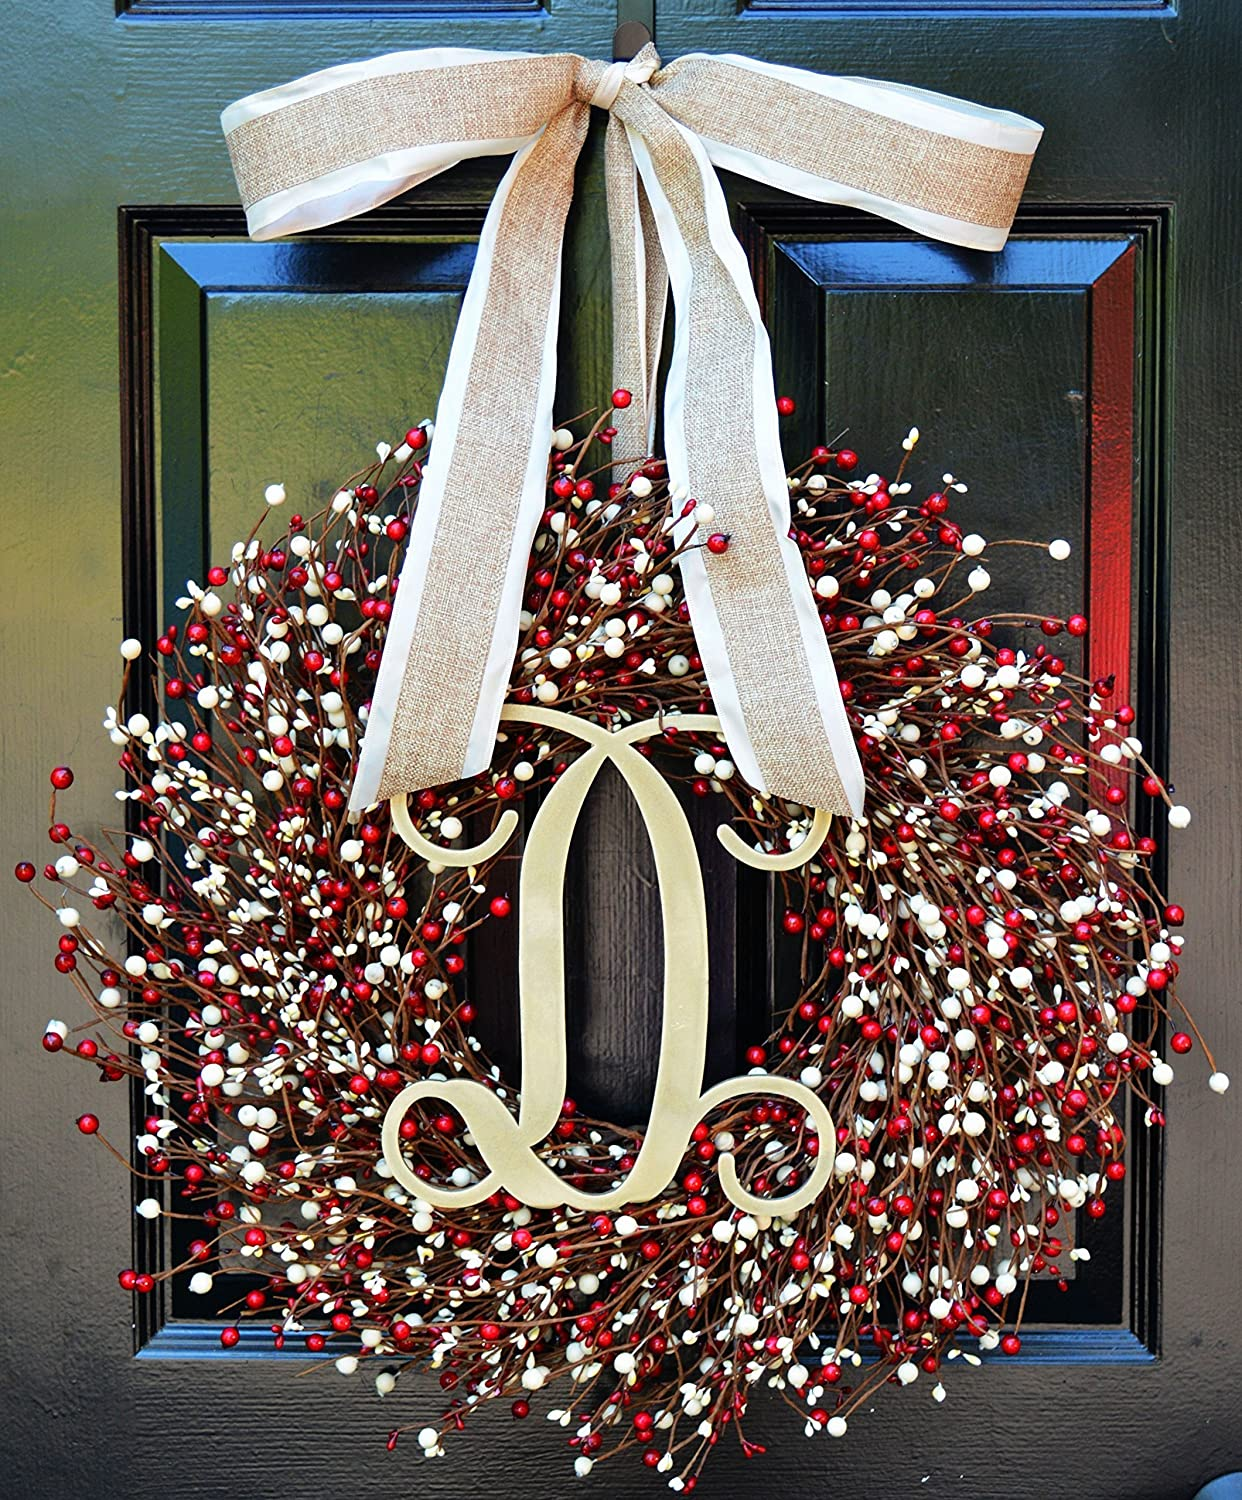 Elegant Holidays Handmade Red & Cream Berry Wreath w/ Monogram & Bow, Decorative Front Door to Welcome Guests-for Outdoor or Indoor Home Décor Great for Christmas, Valentine's Day, Winter 16-24 inches